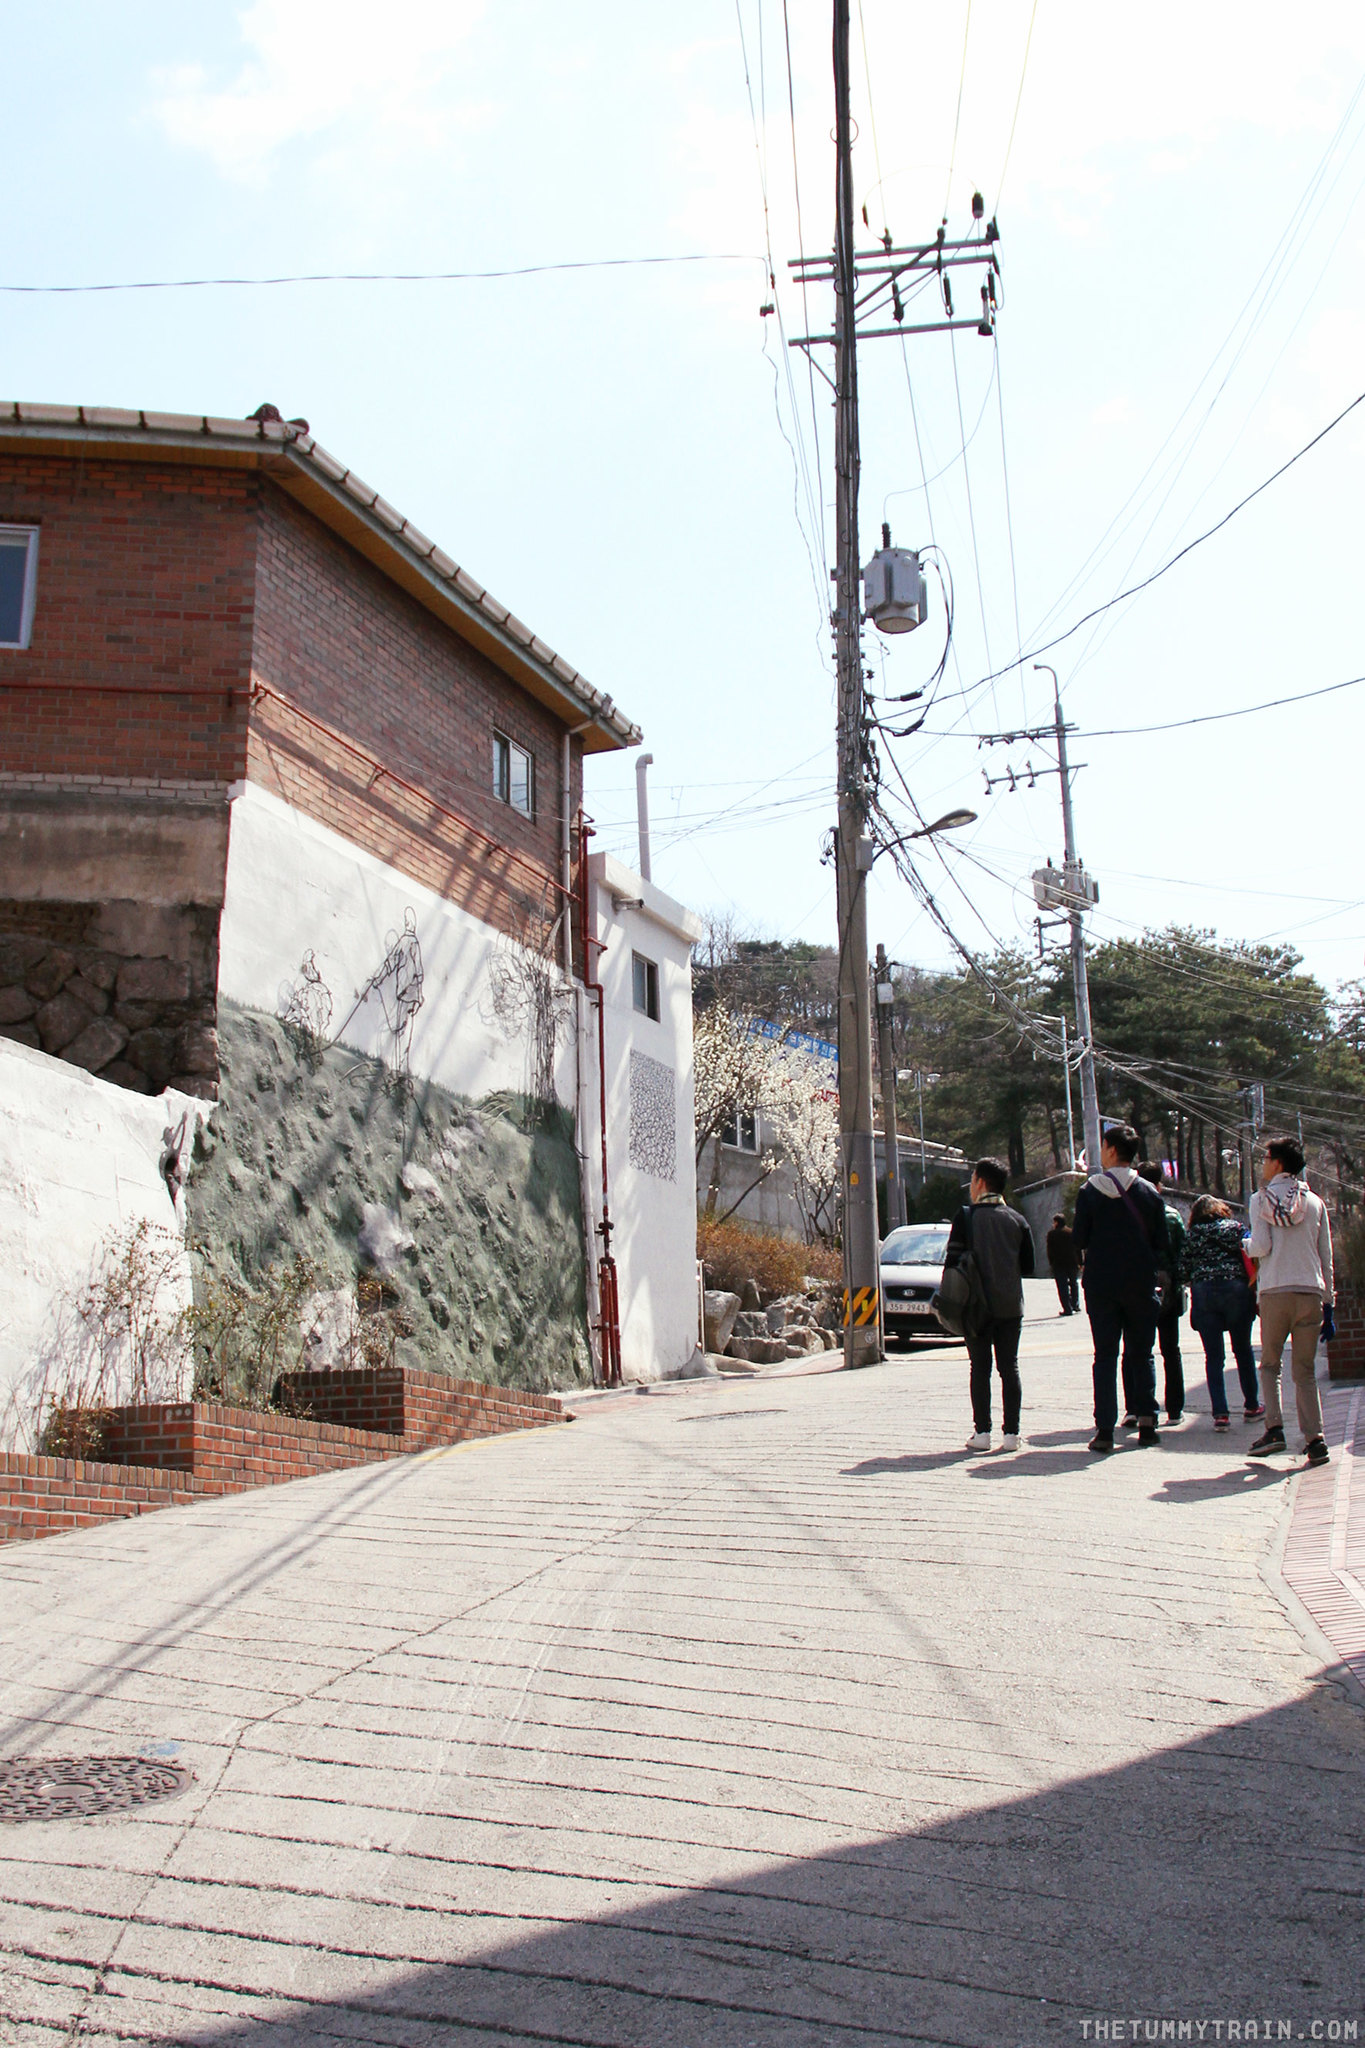 33467936922 6aa3462280 k - Seoul-ful Spring 2016: A mini exploration of Ihwa Mural Village